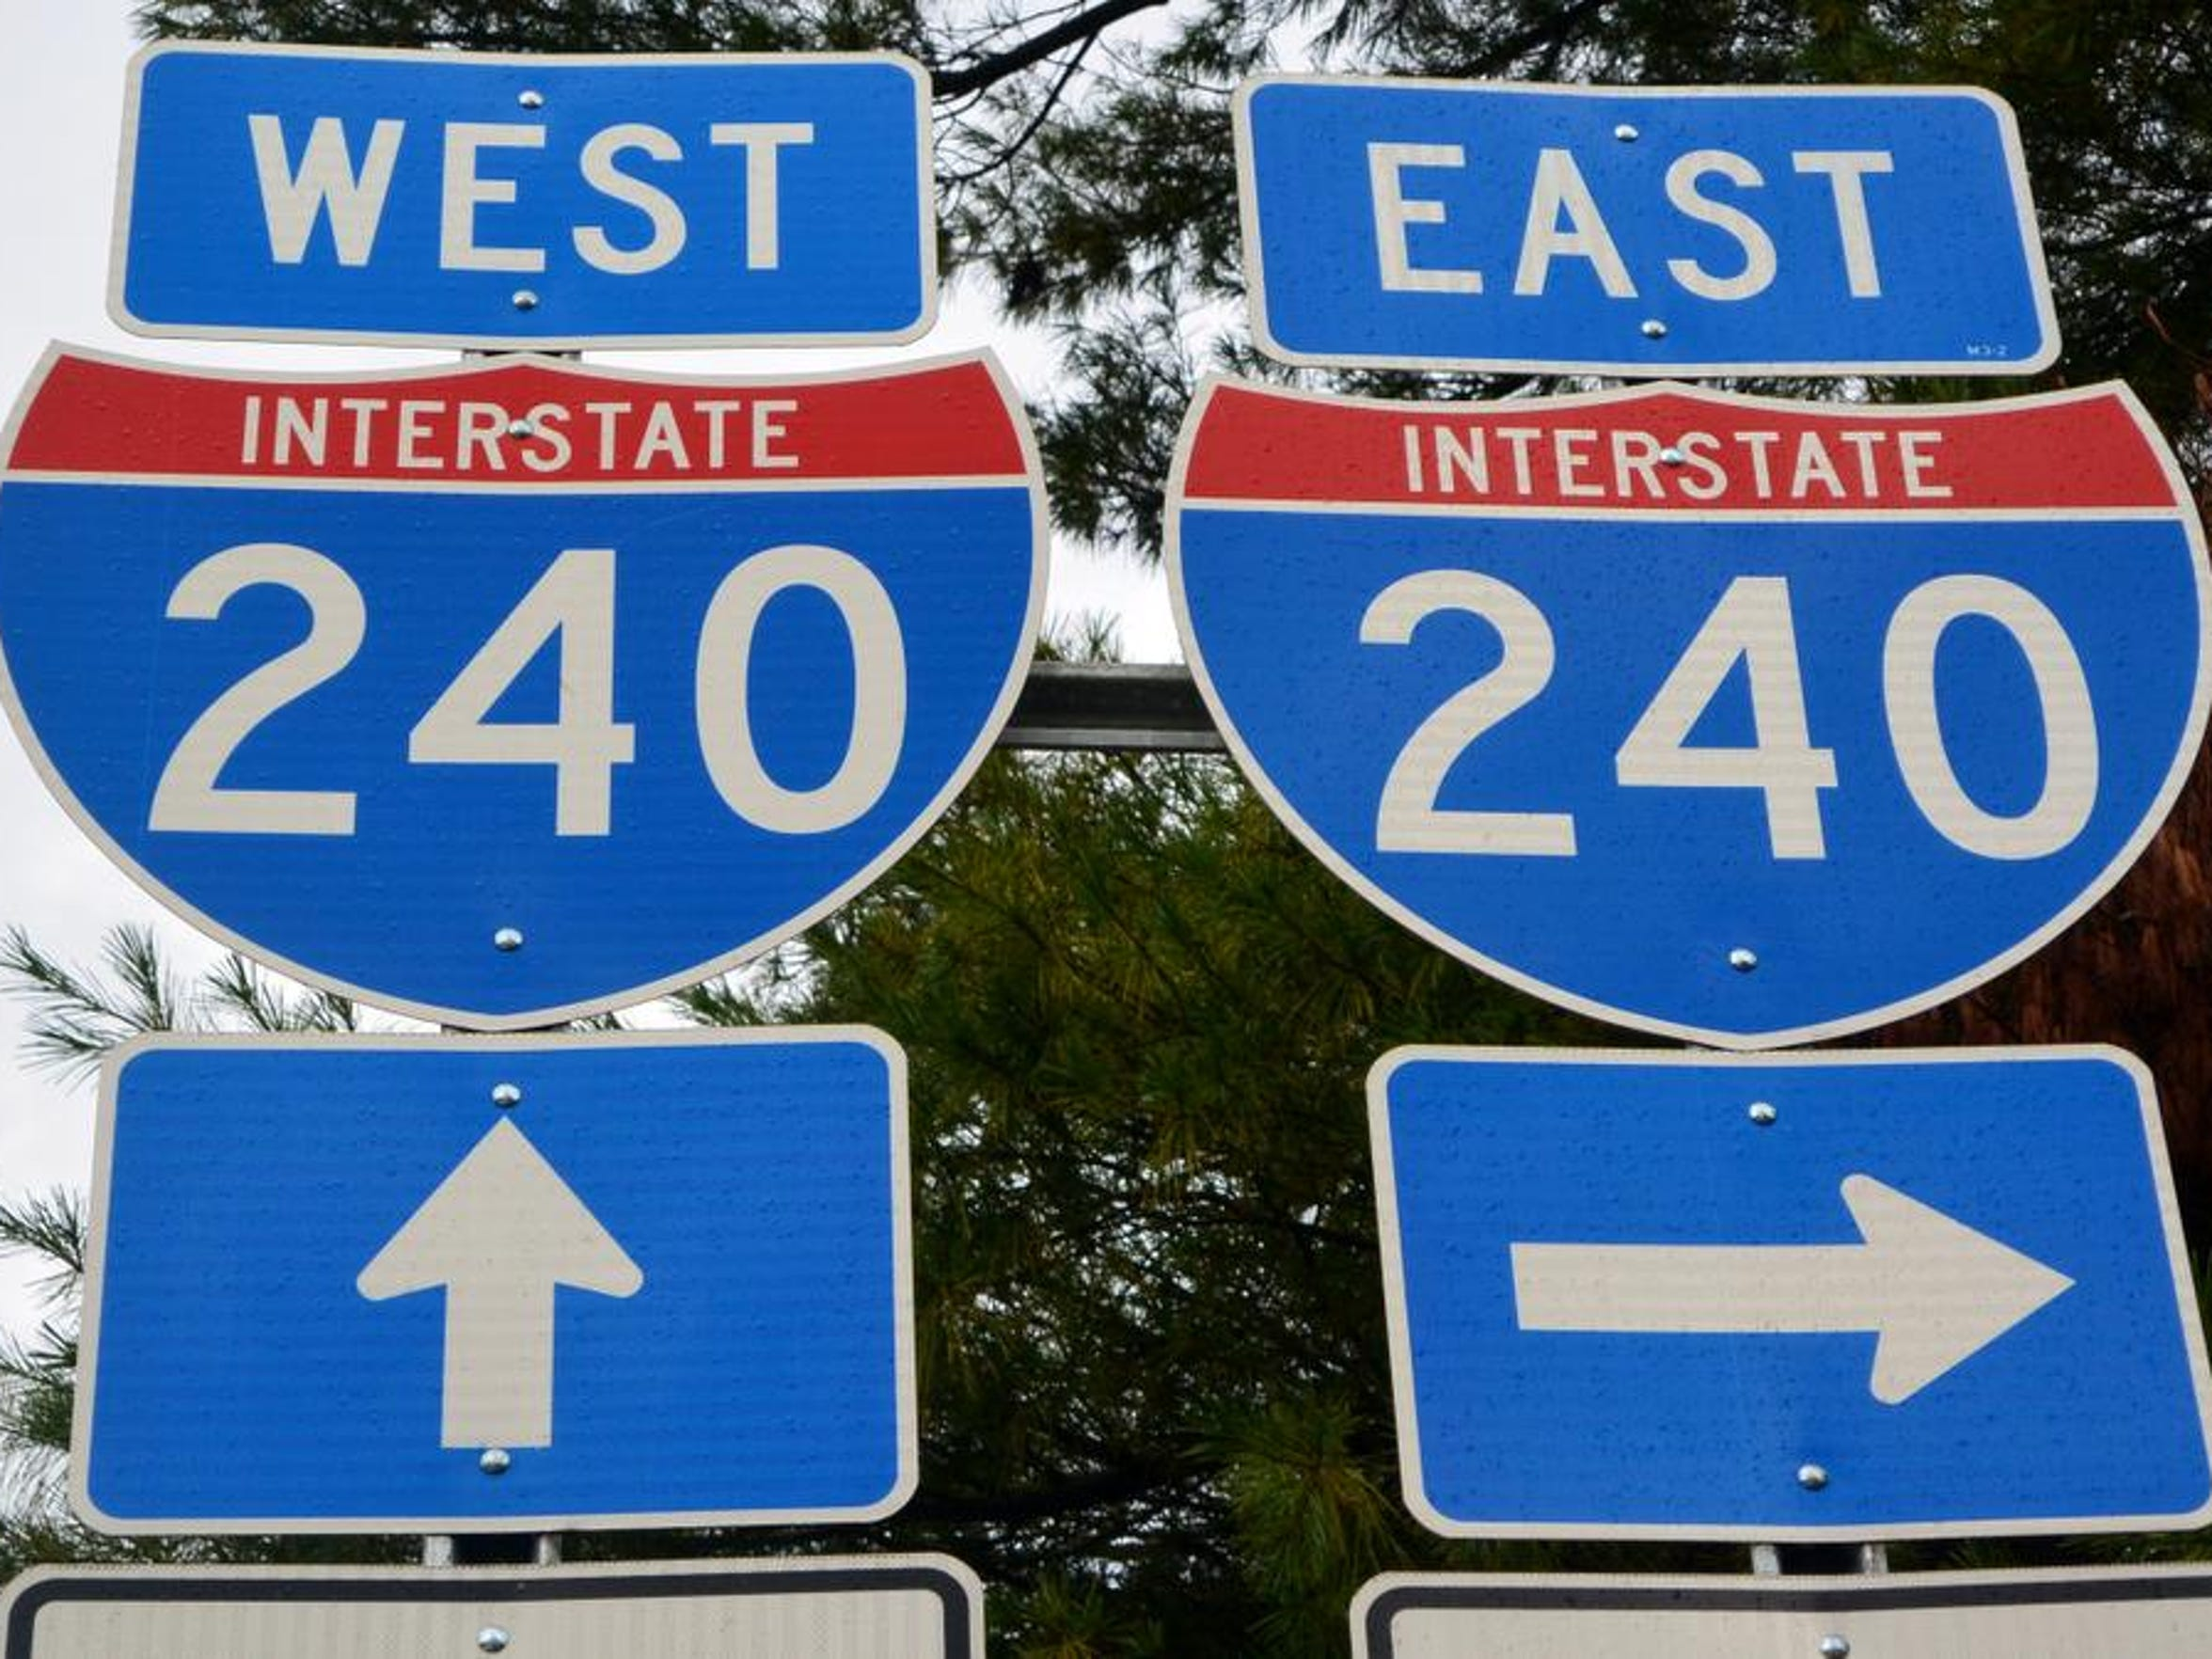 Interstate 240 is one of several area highways where construction is planned .